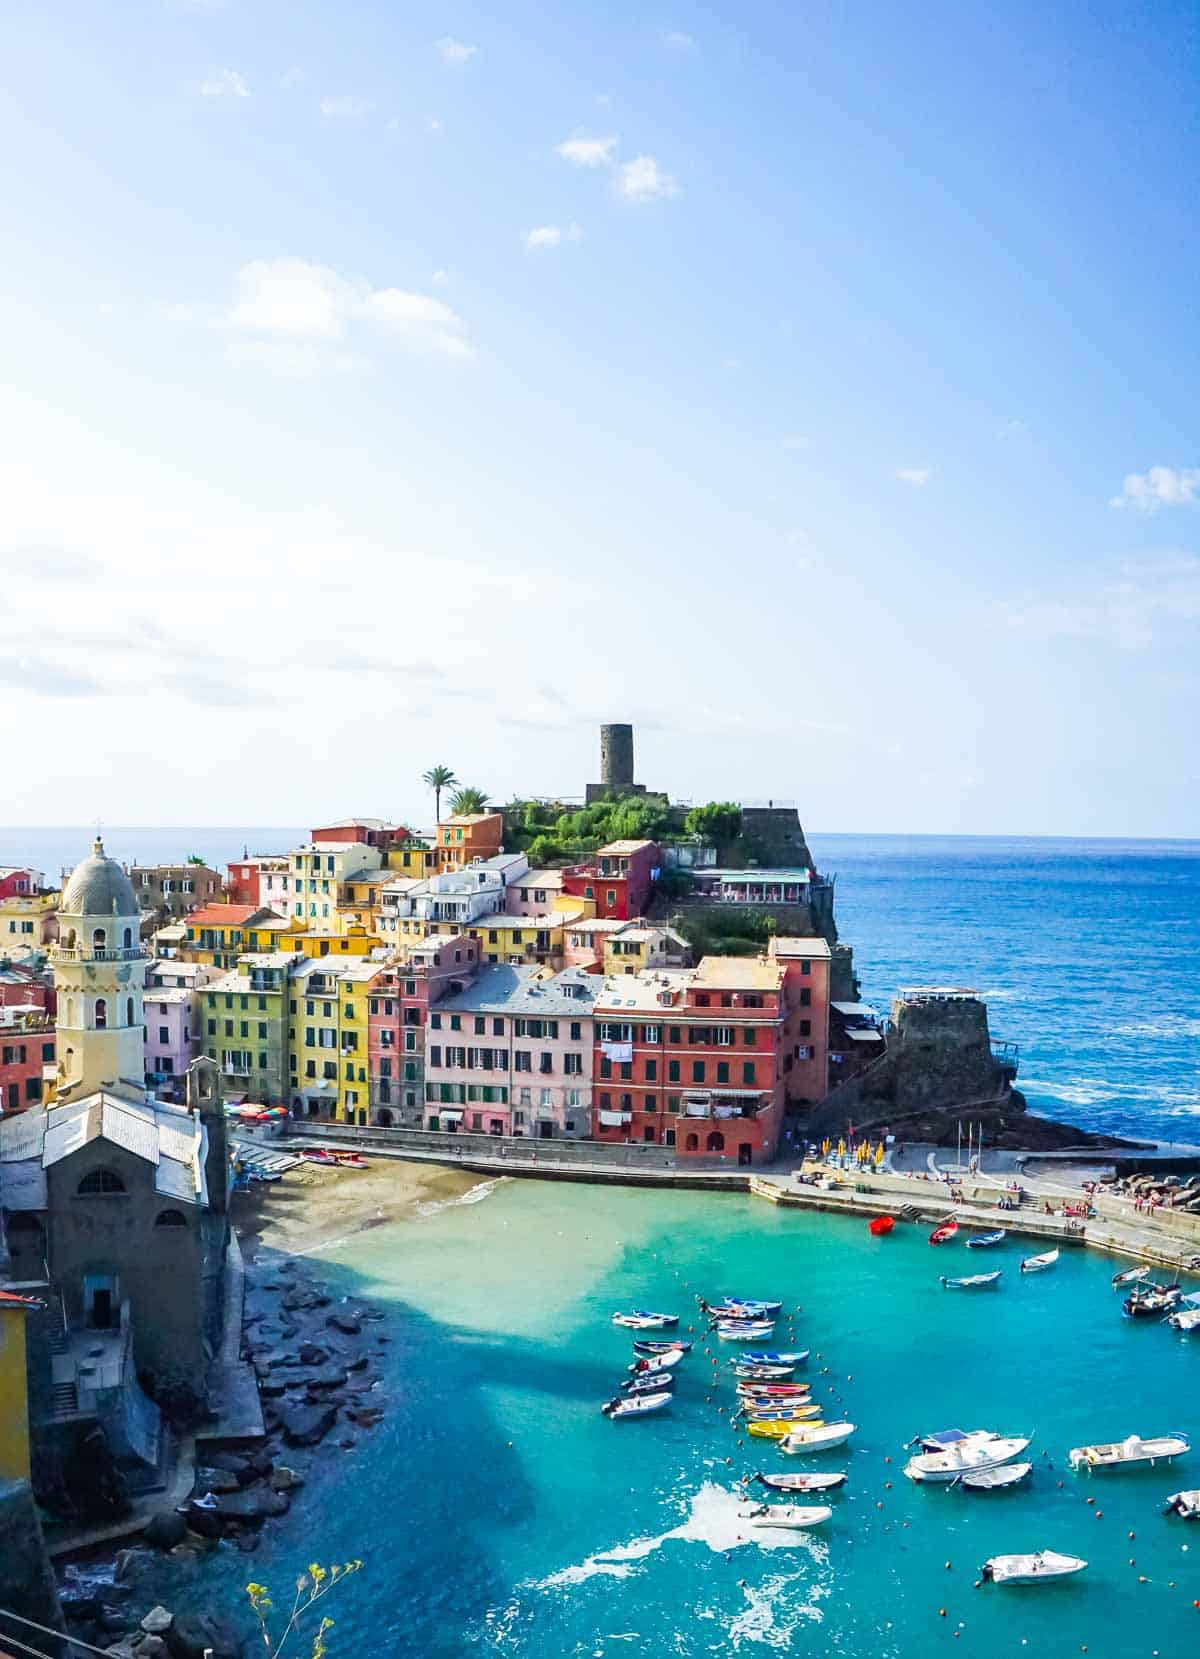 Ultimate Cinque Terre Trip Itinerary! Best Cinque Terre restaurants, hikes, and Cinque Terre town overview. Everything you need to know to plan the perfect trip to Cinque Terre Italy. #wellplated #cinqueterre #italy #travel